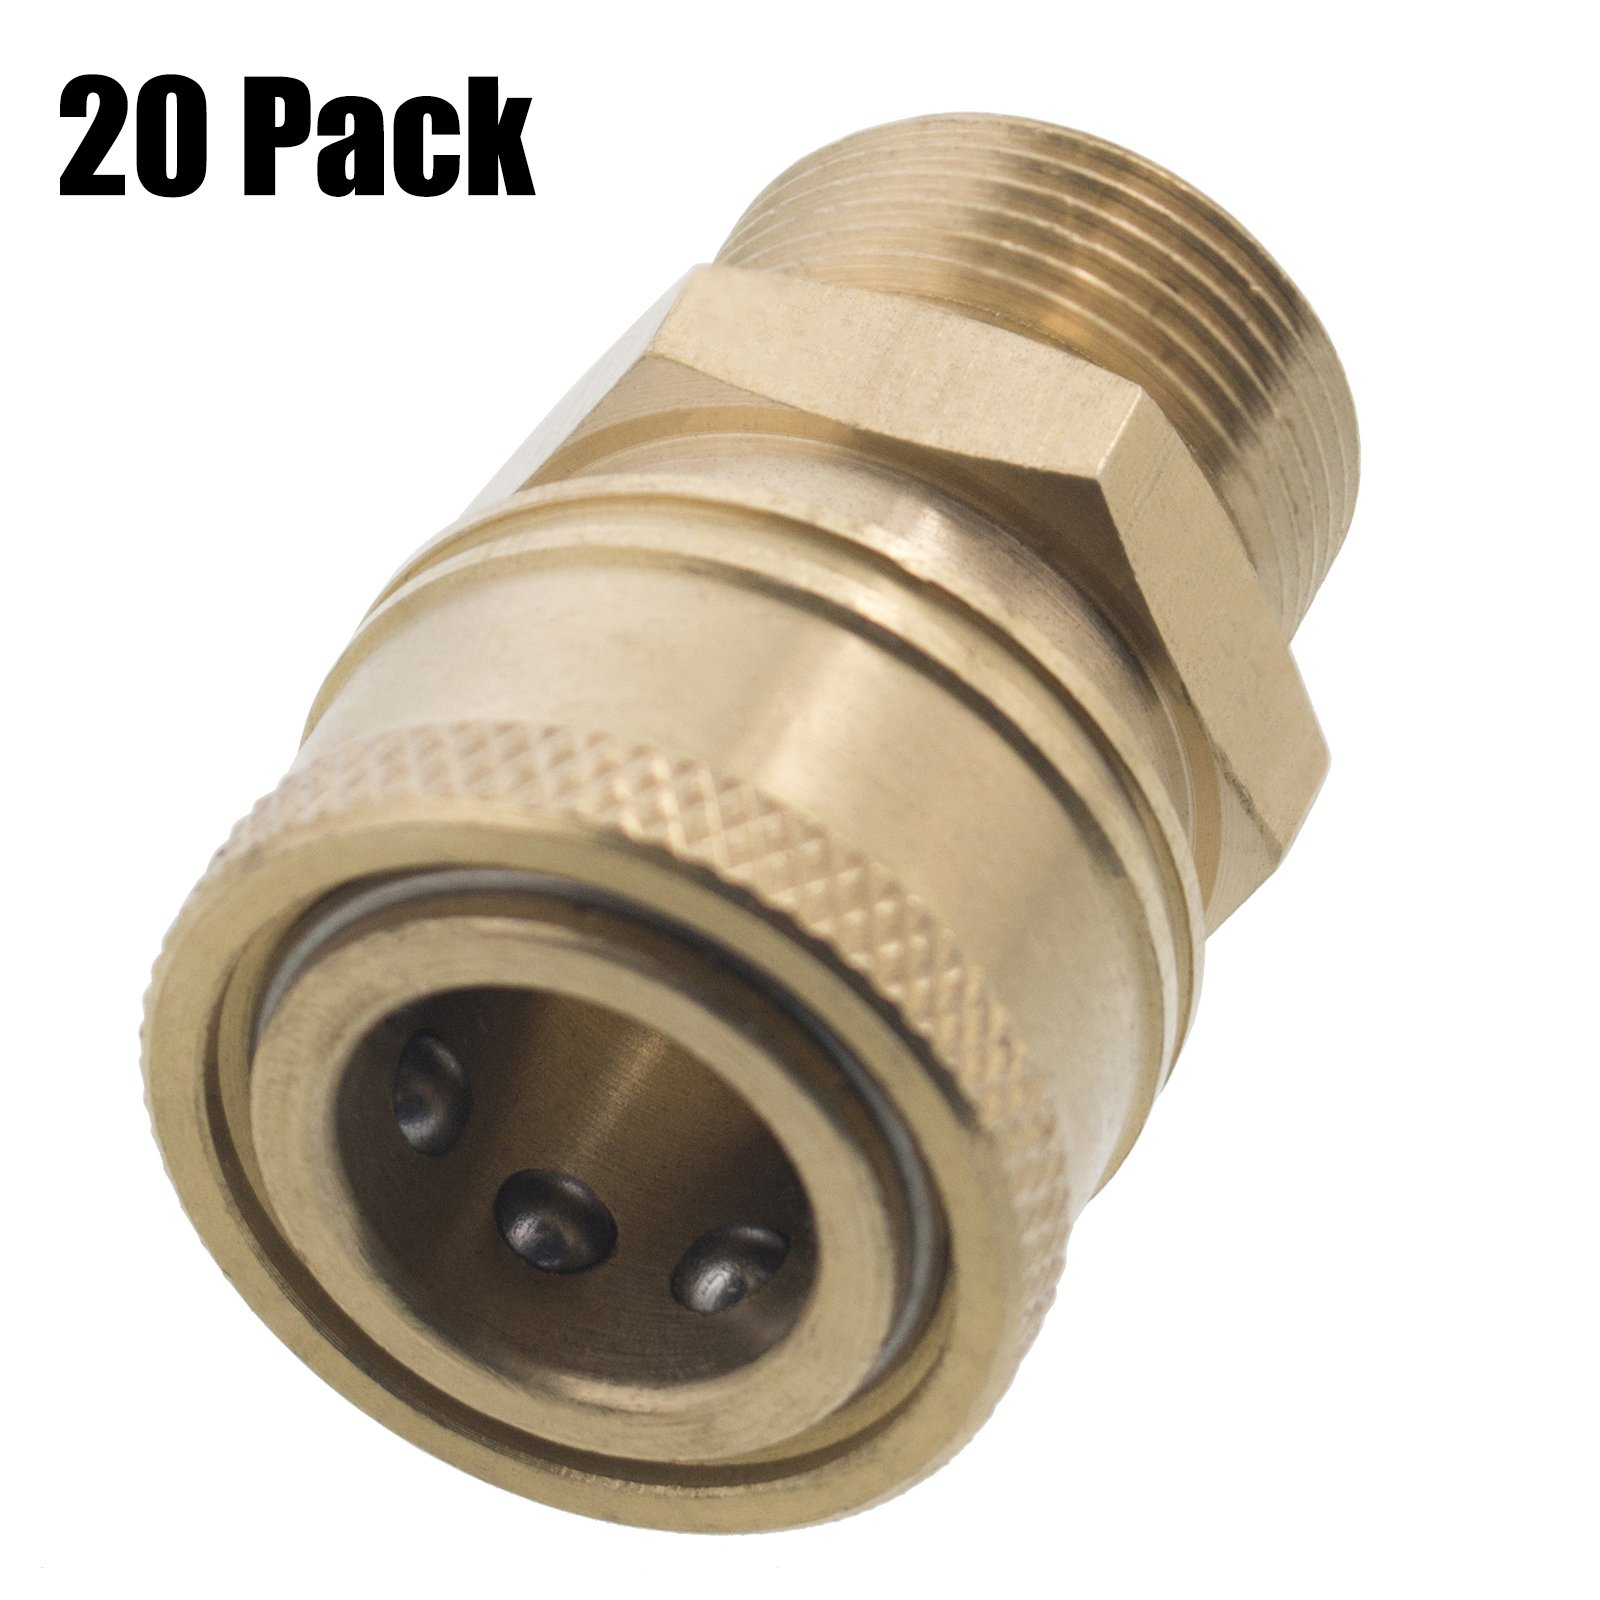 Erie Tools 20 Pressure Washer 3/8 Male NPT to M22 Quick Connect Socket Coupler 14 mm